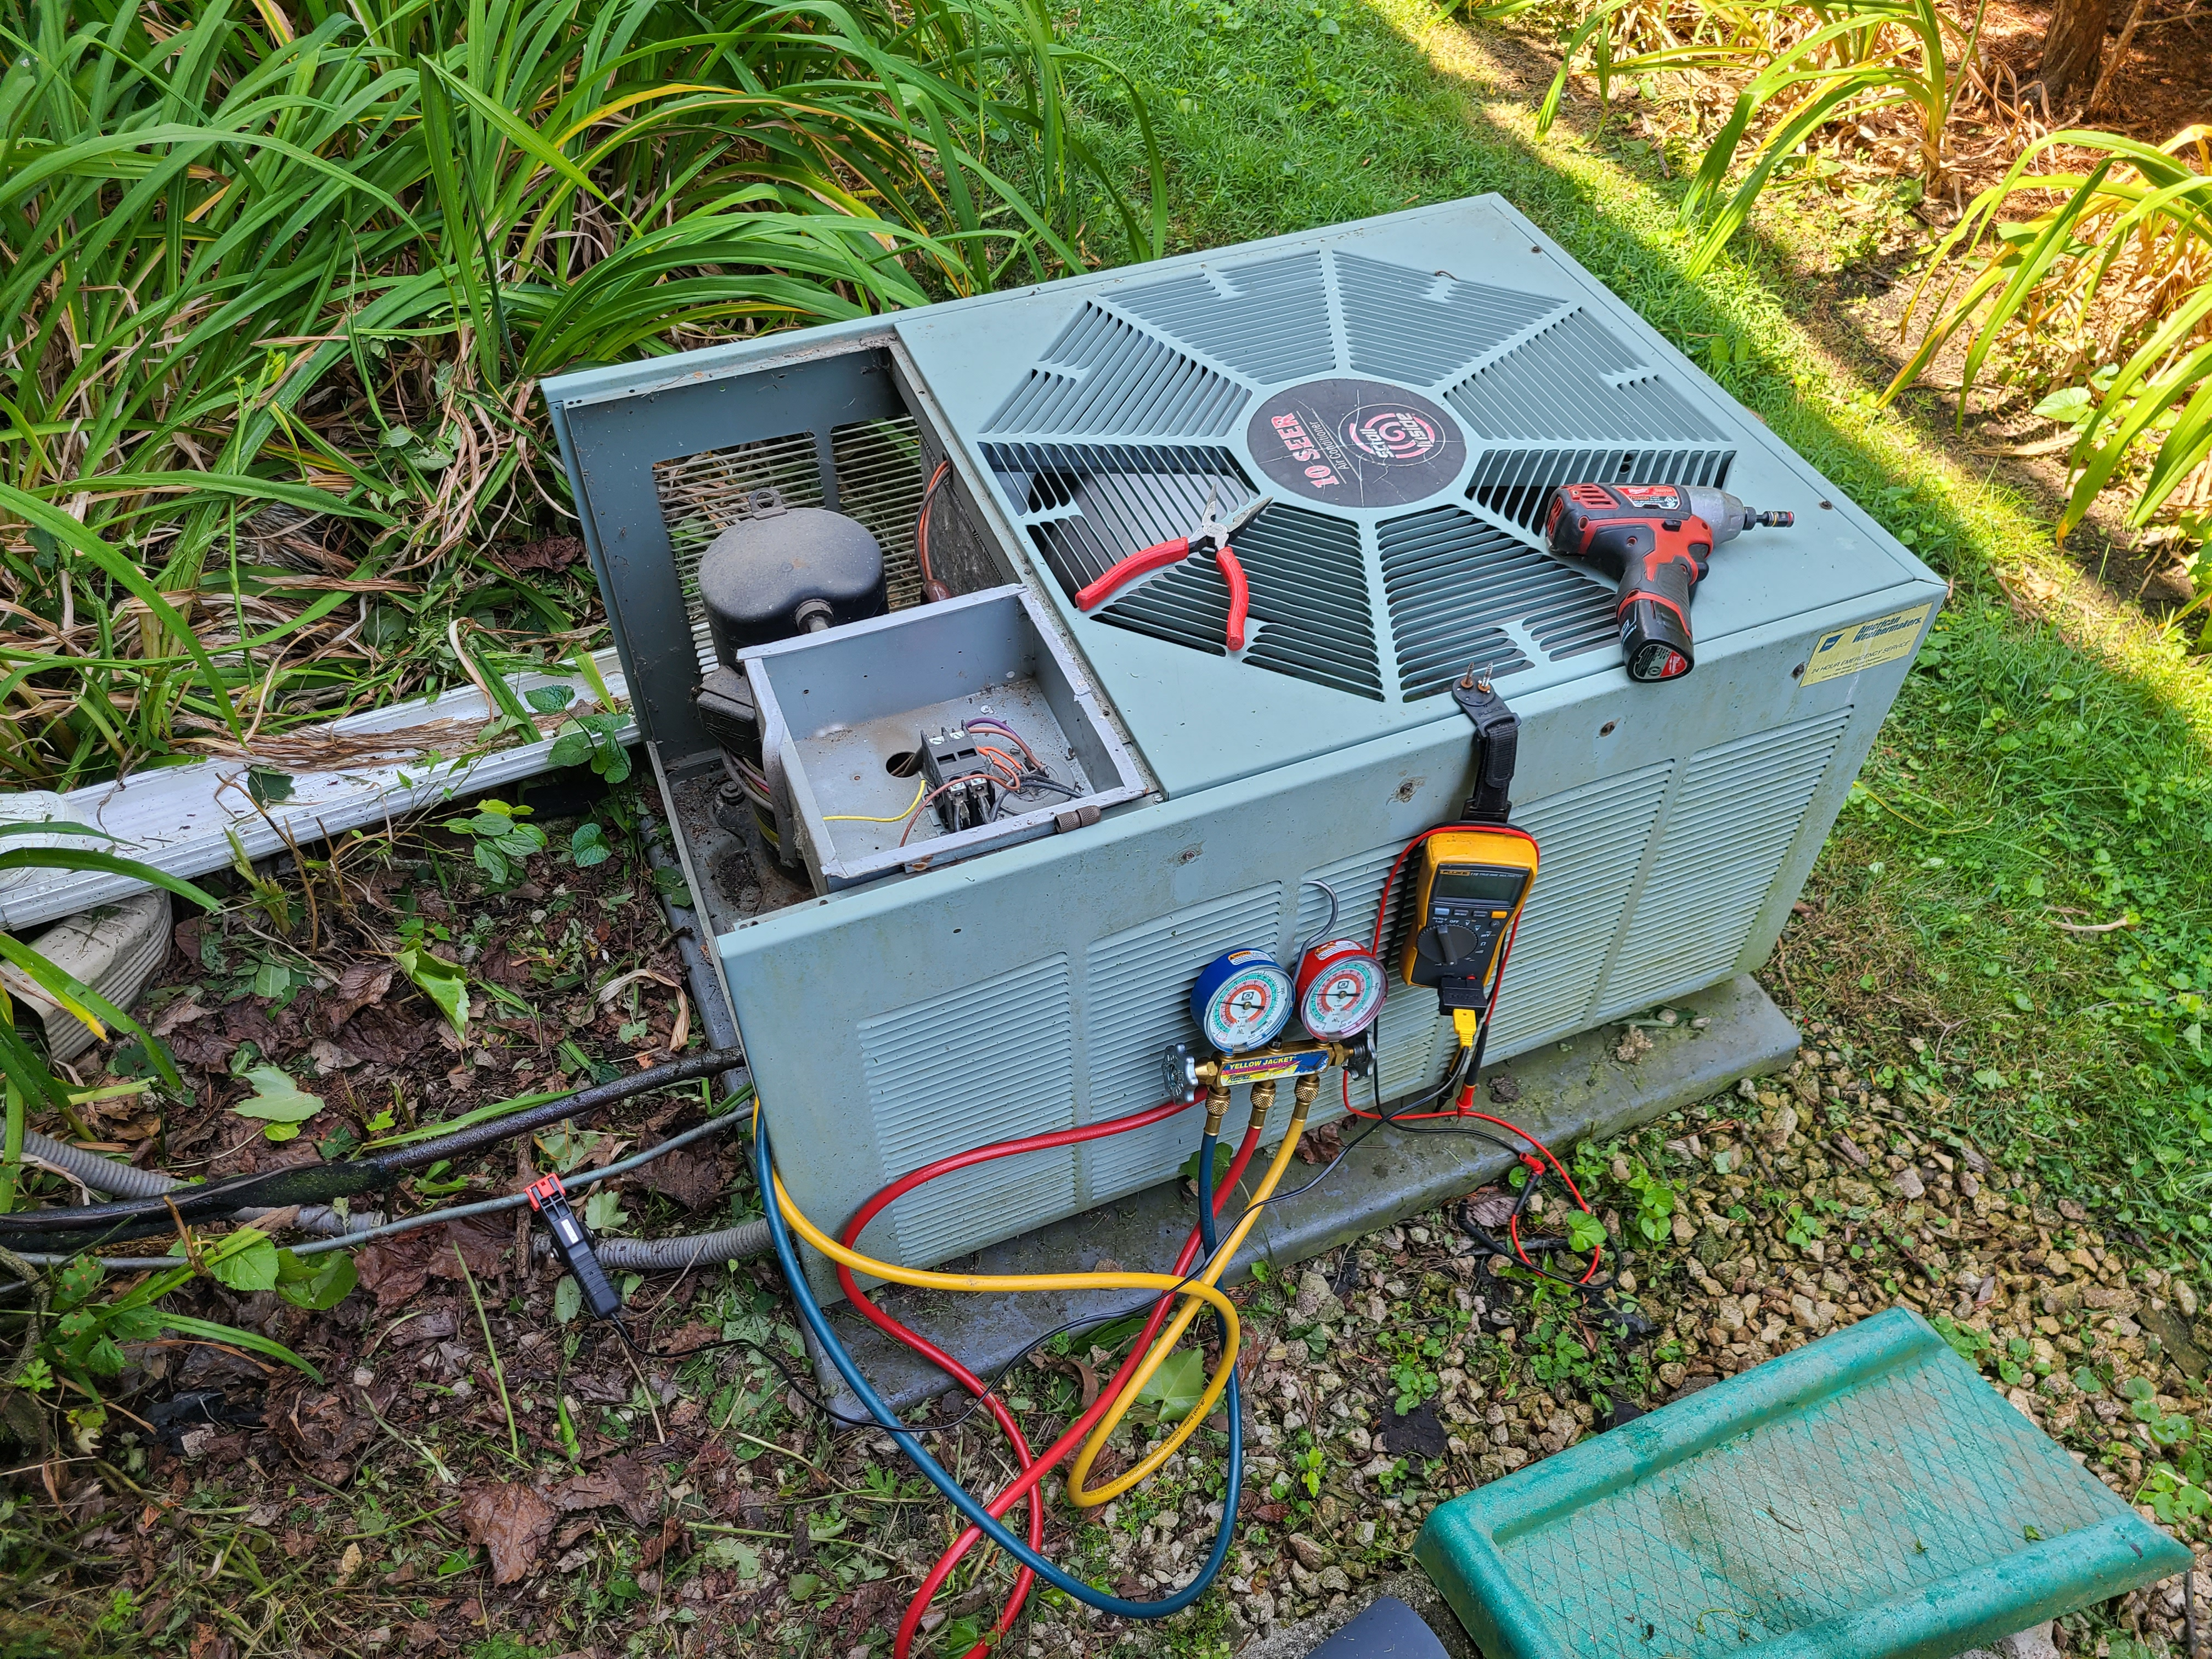 Rheem ac maintenance and repair. System cleaned and checked and ready for summer.